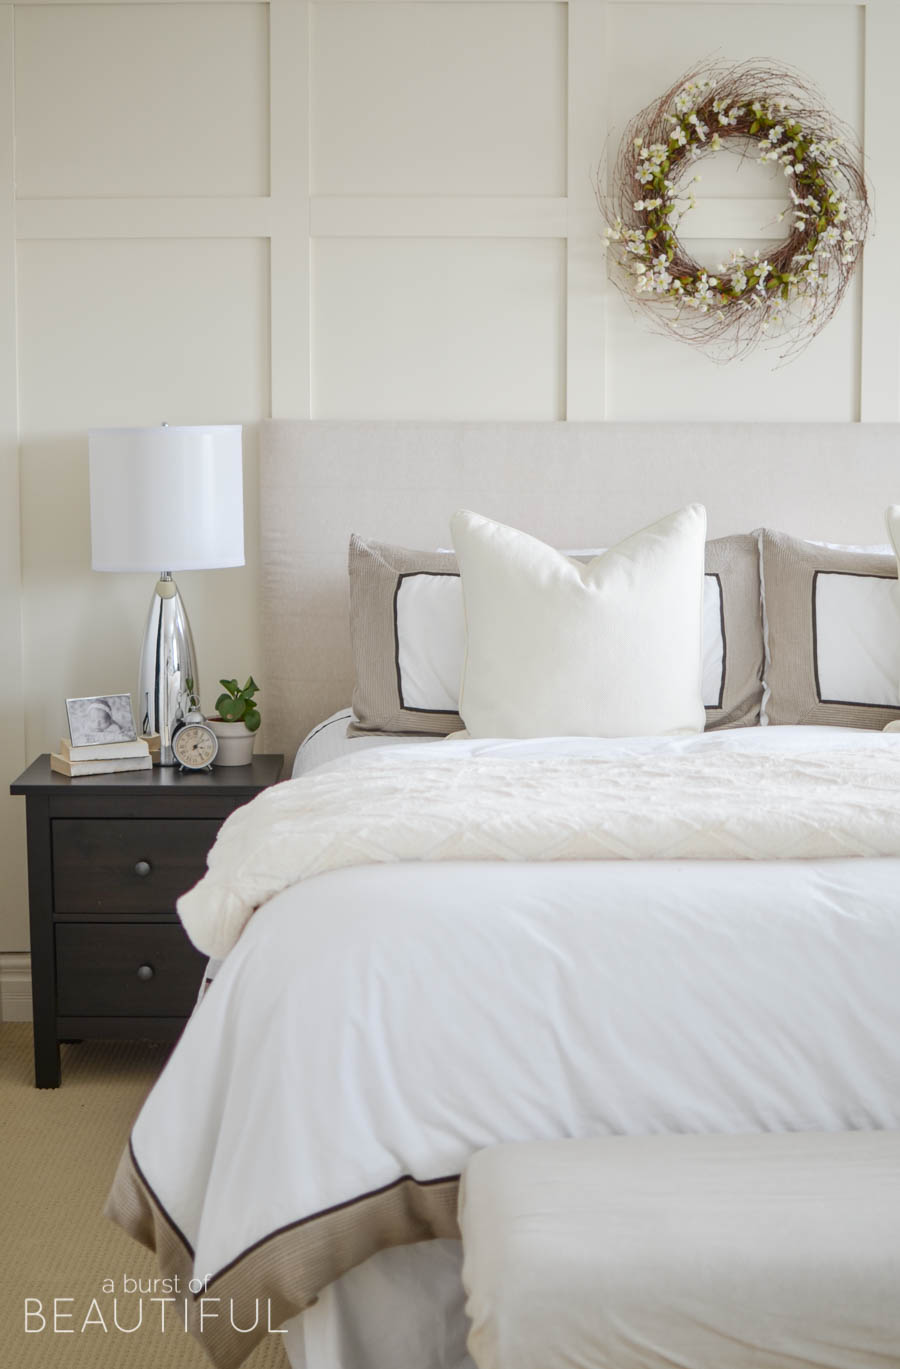 Eclectic home tour a burst of beautiful kelly elko for R kelly bedroom boom